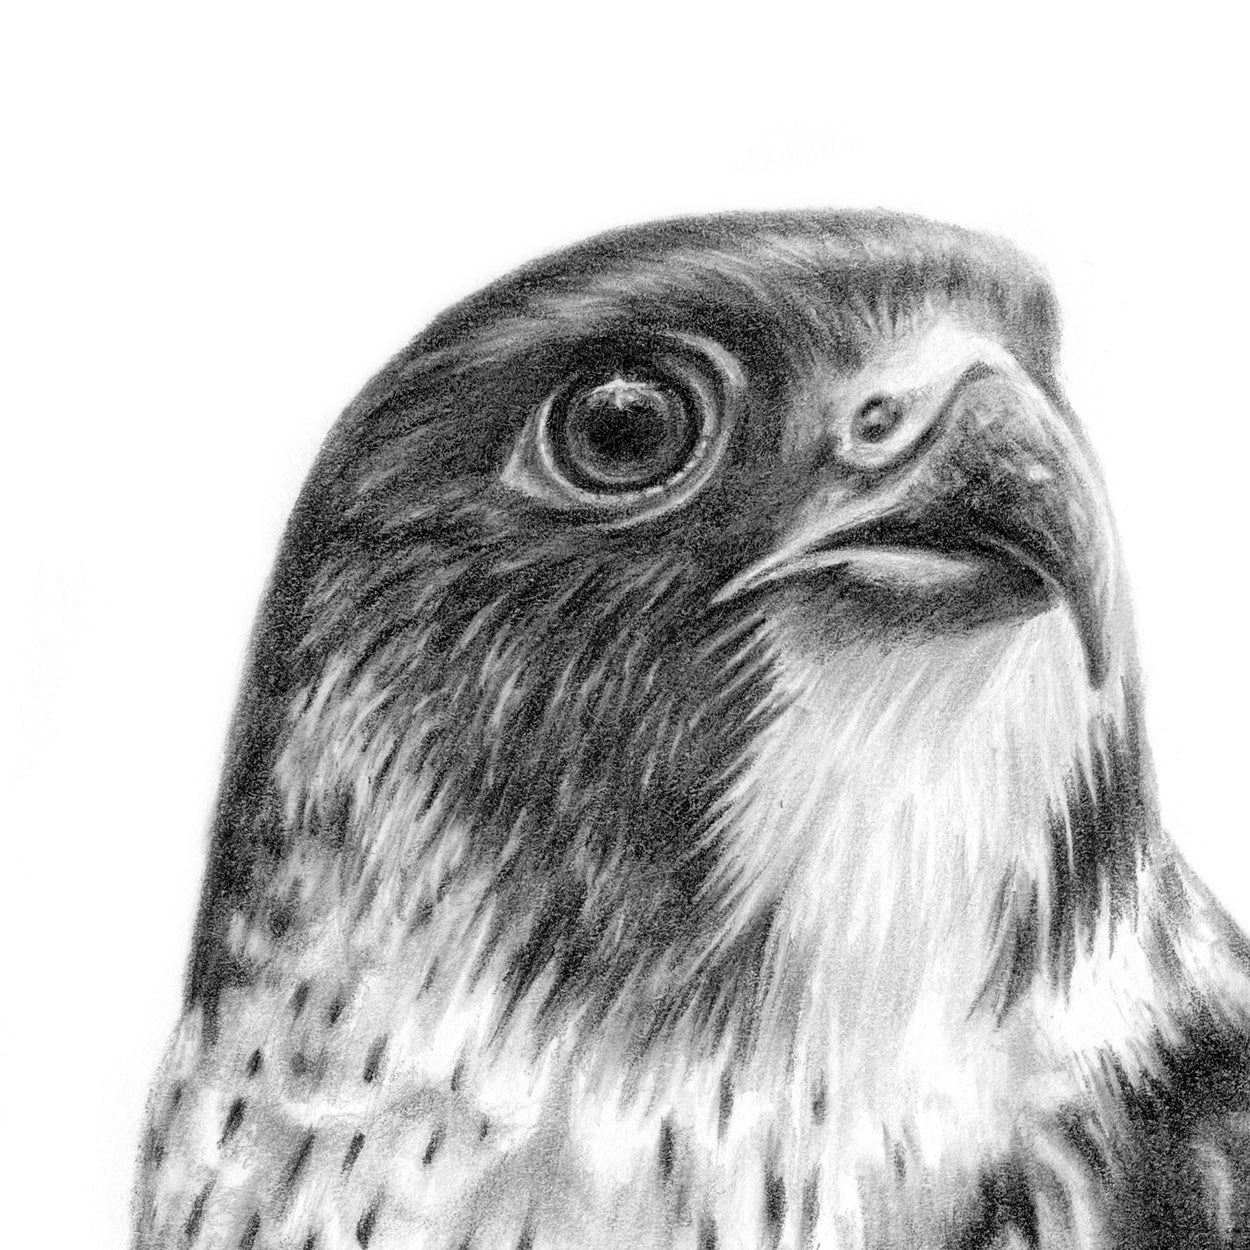 Peregrine Pencil Drawing Close-up 1 - The Thriving Wild - Jill Dimond